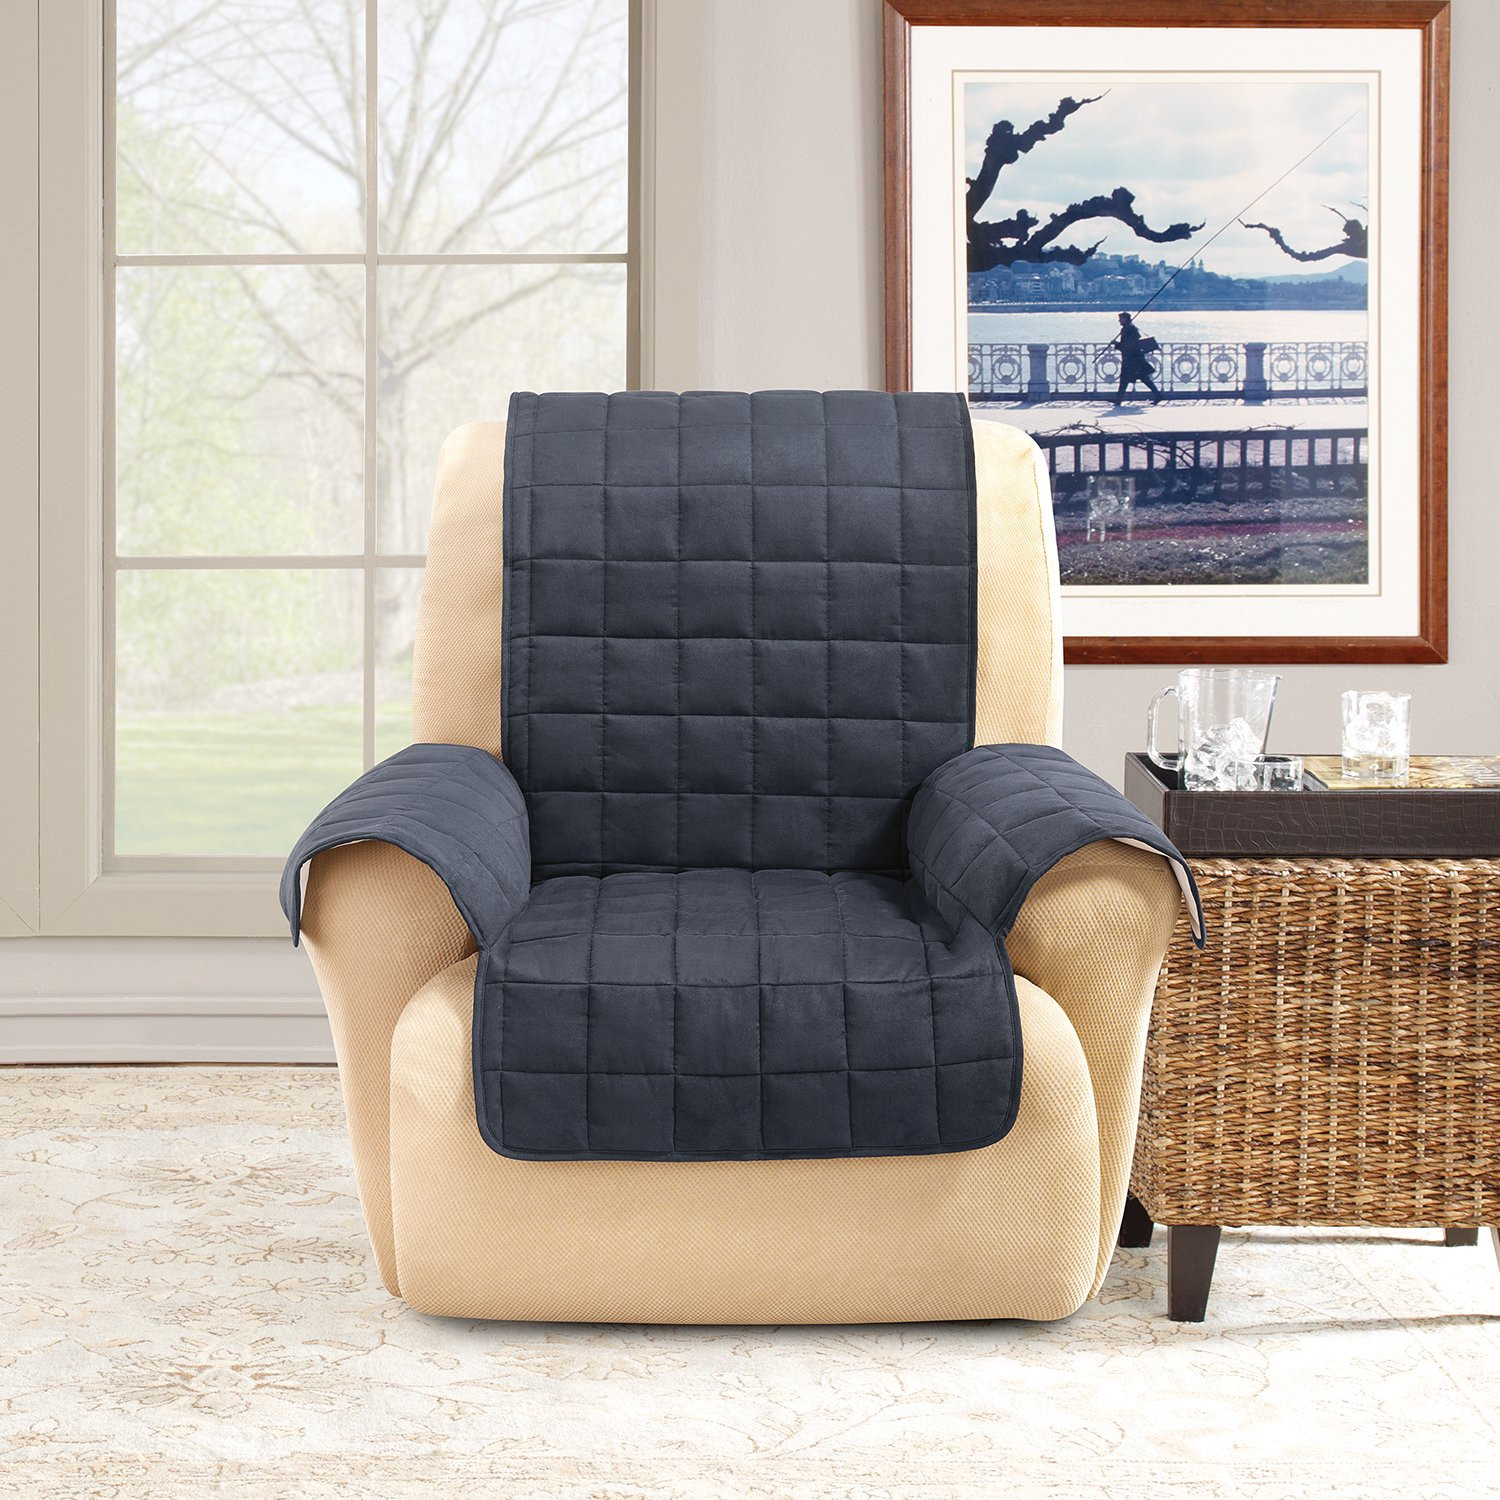 Best ideas about Surefit Chair Cover . Save or Pin Sure Fit Recliner Slipcover & Reviews Now.